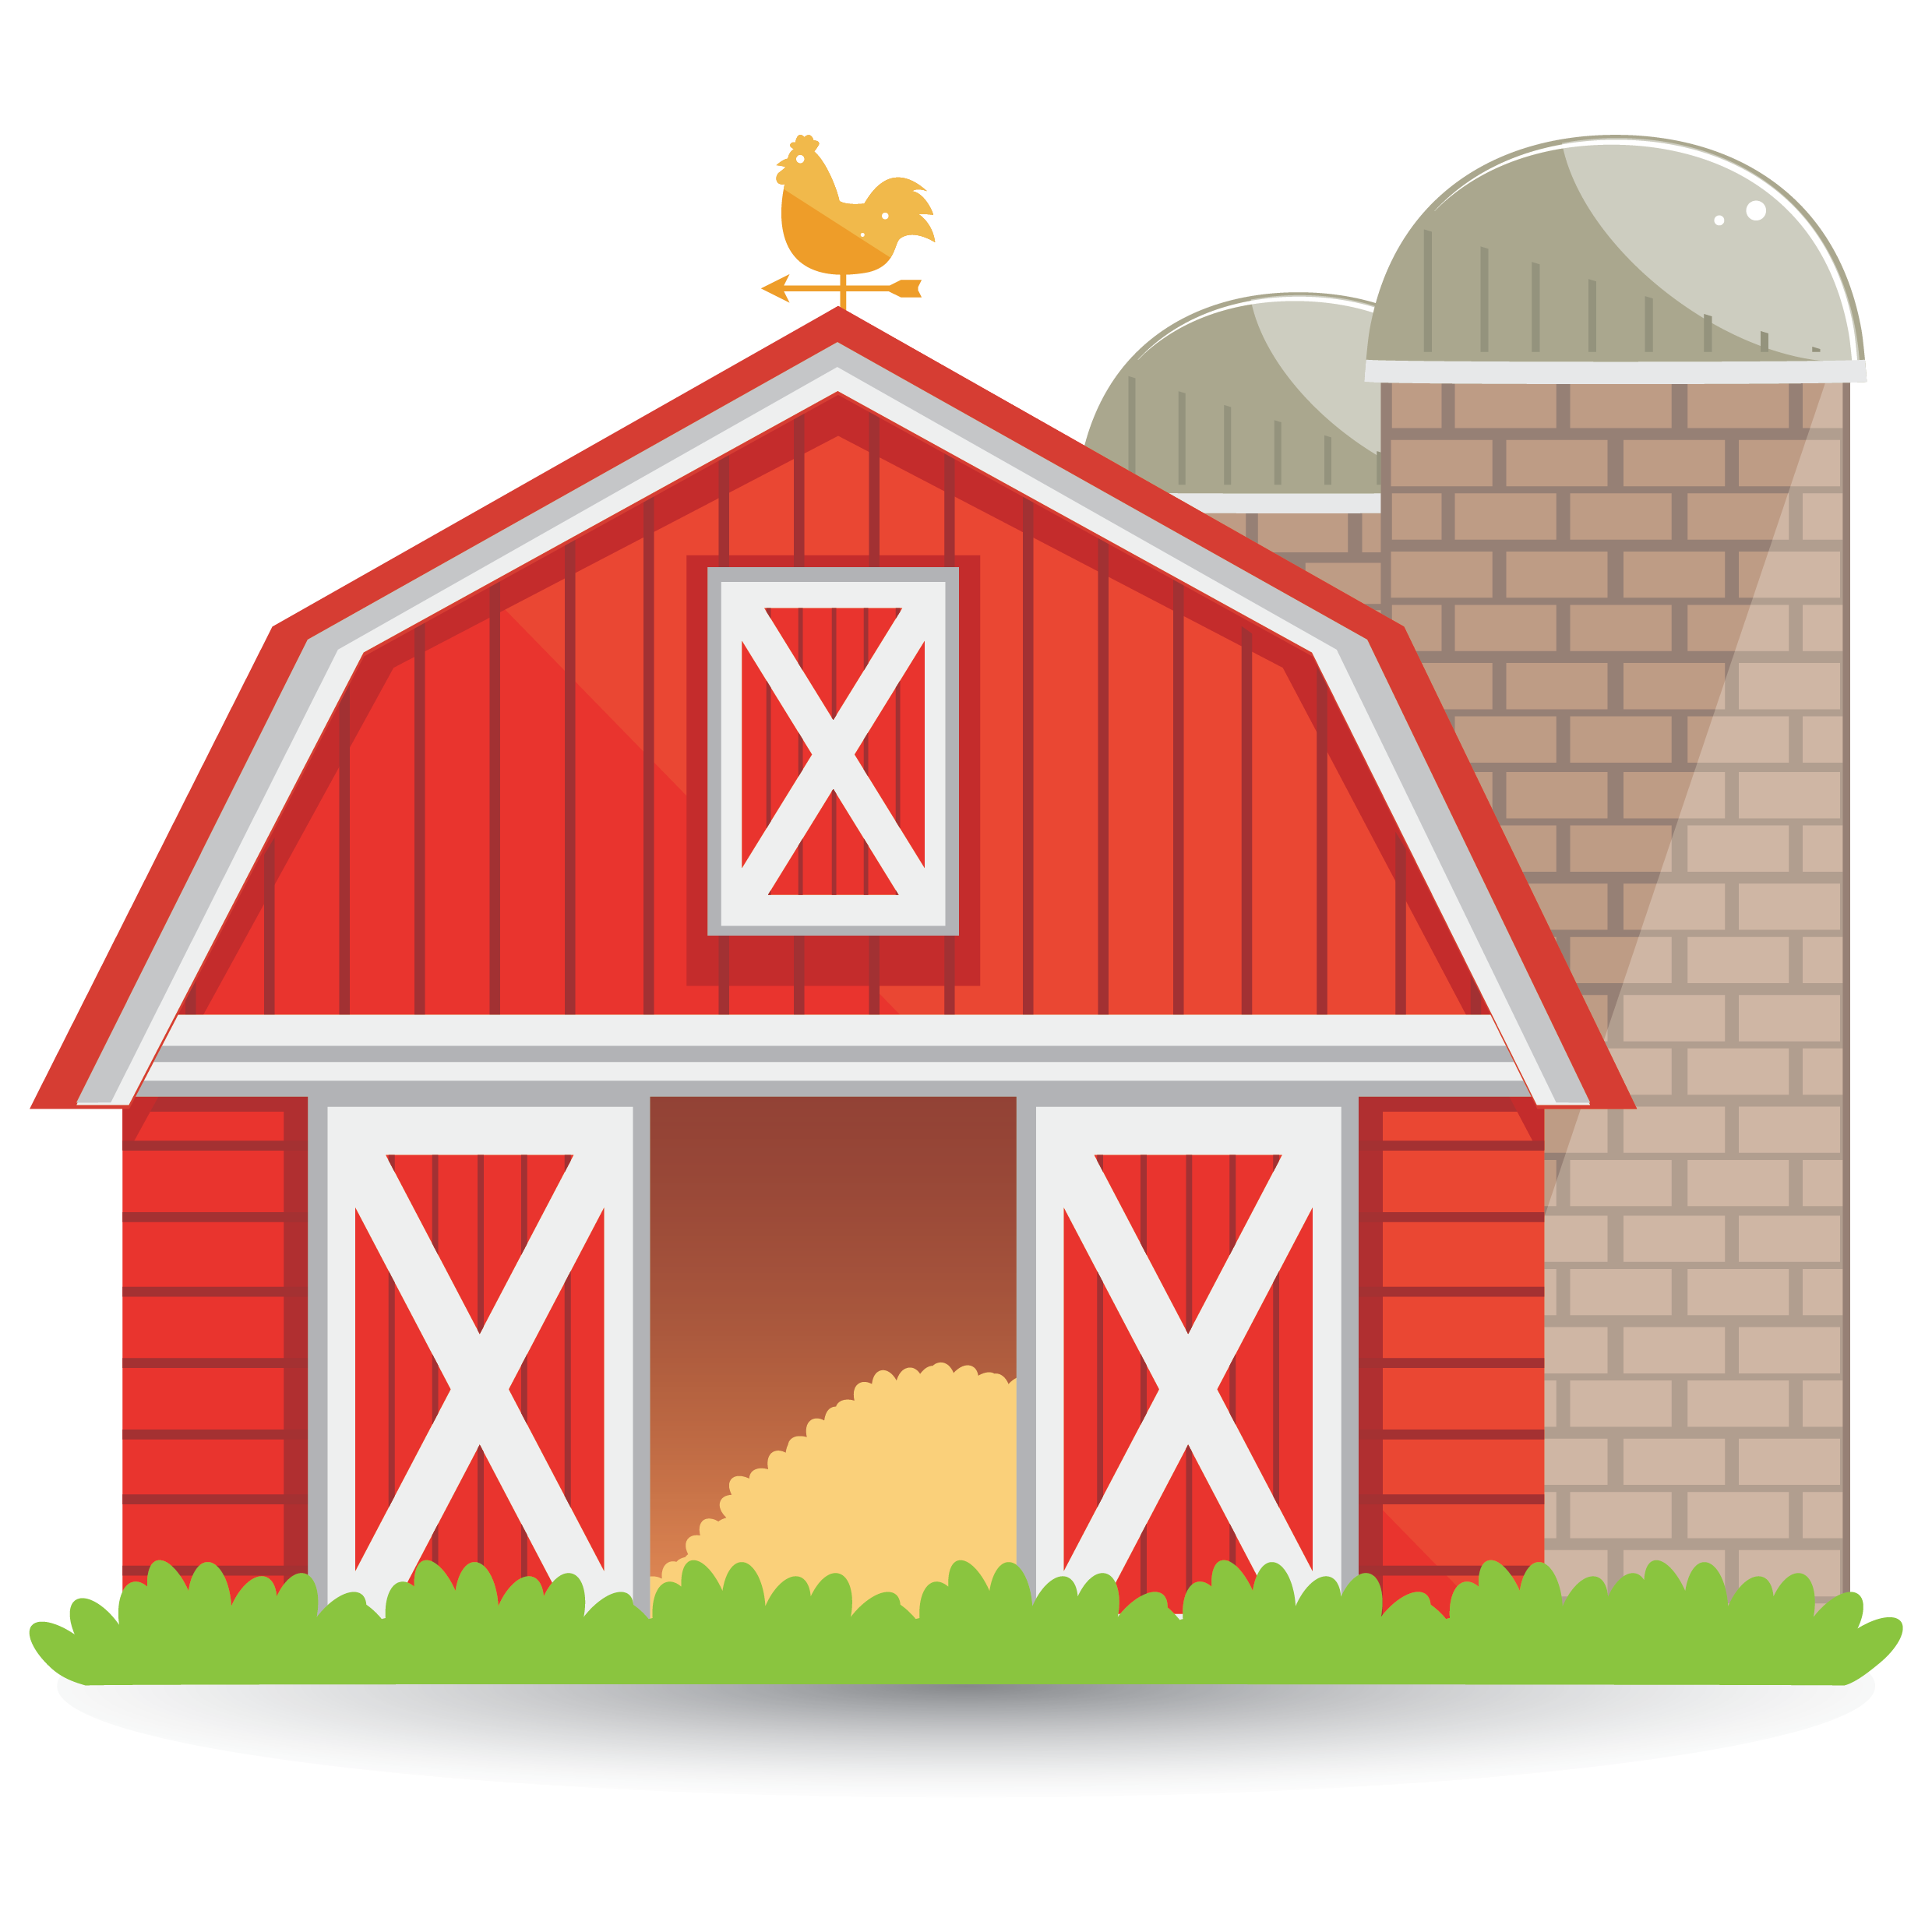 farming png royalty. Barn clipart image library library